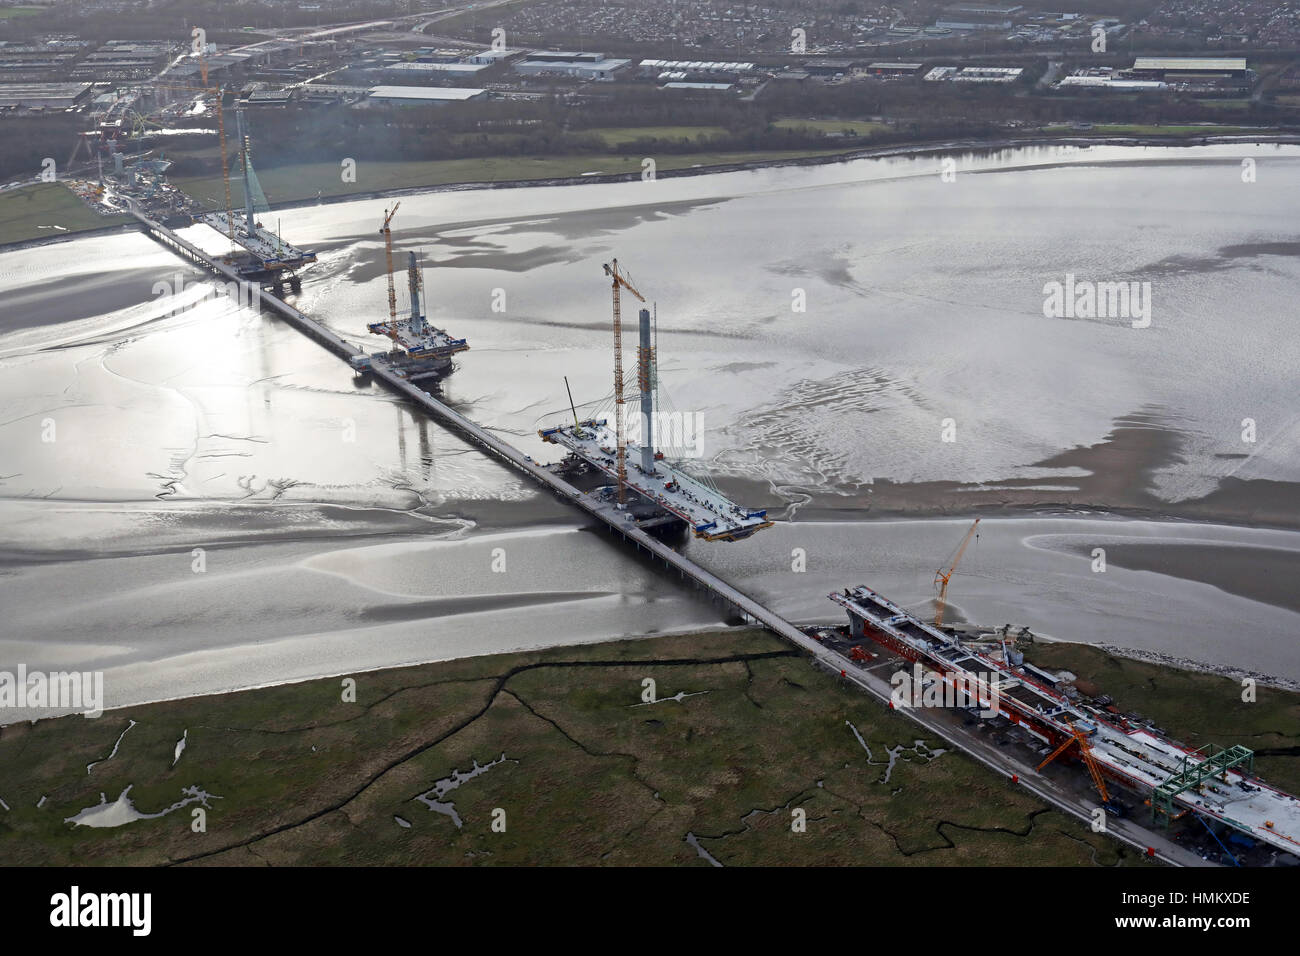 aerial view of the Mersey Gateway, the new bridge across the River Mersey at Runcorn - Stock Image